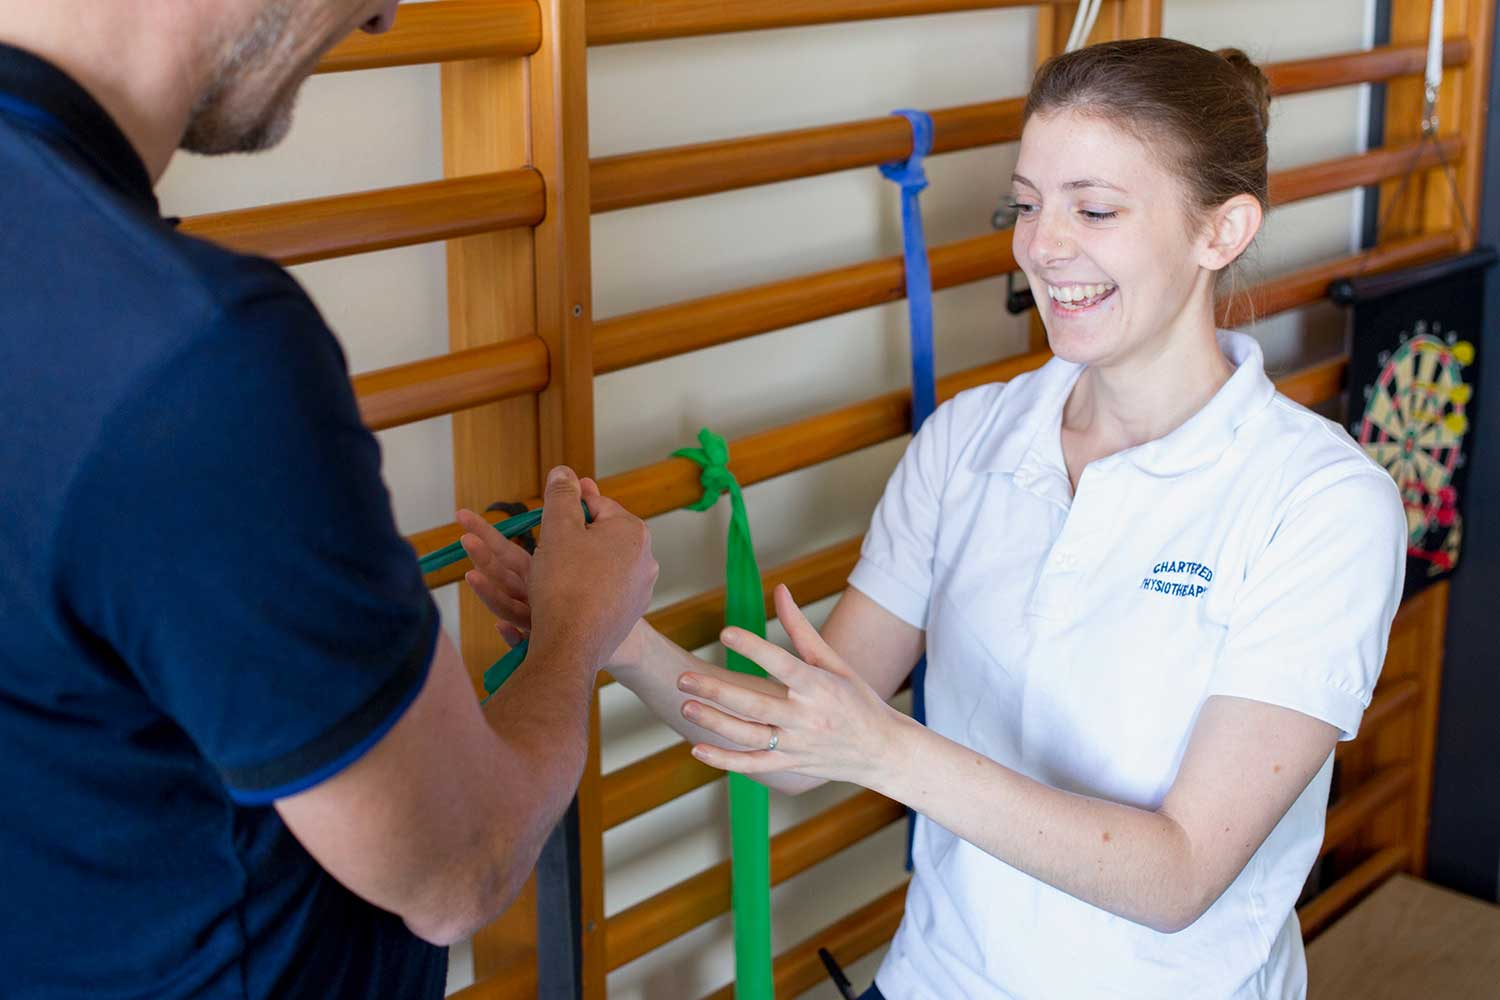 A patient smiling while doing physiotherapy